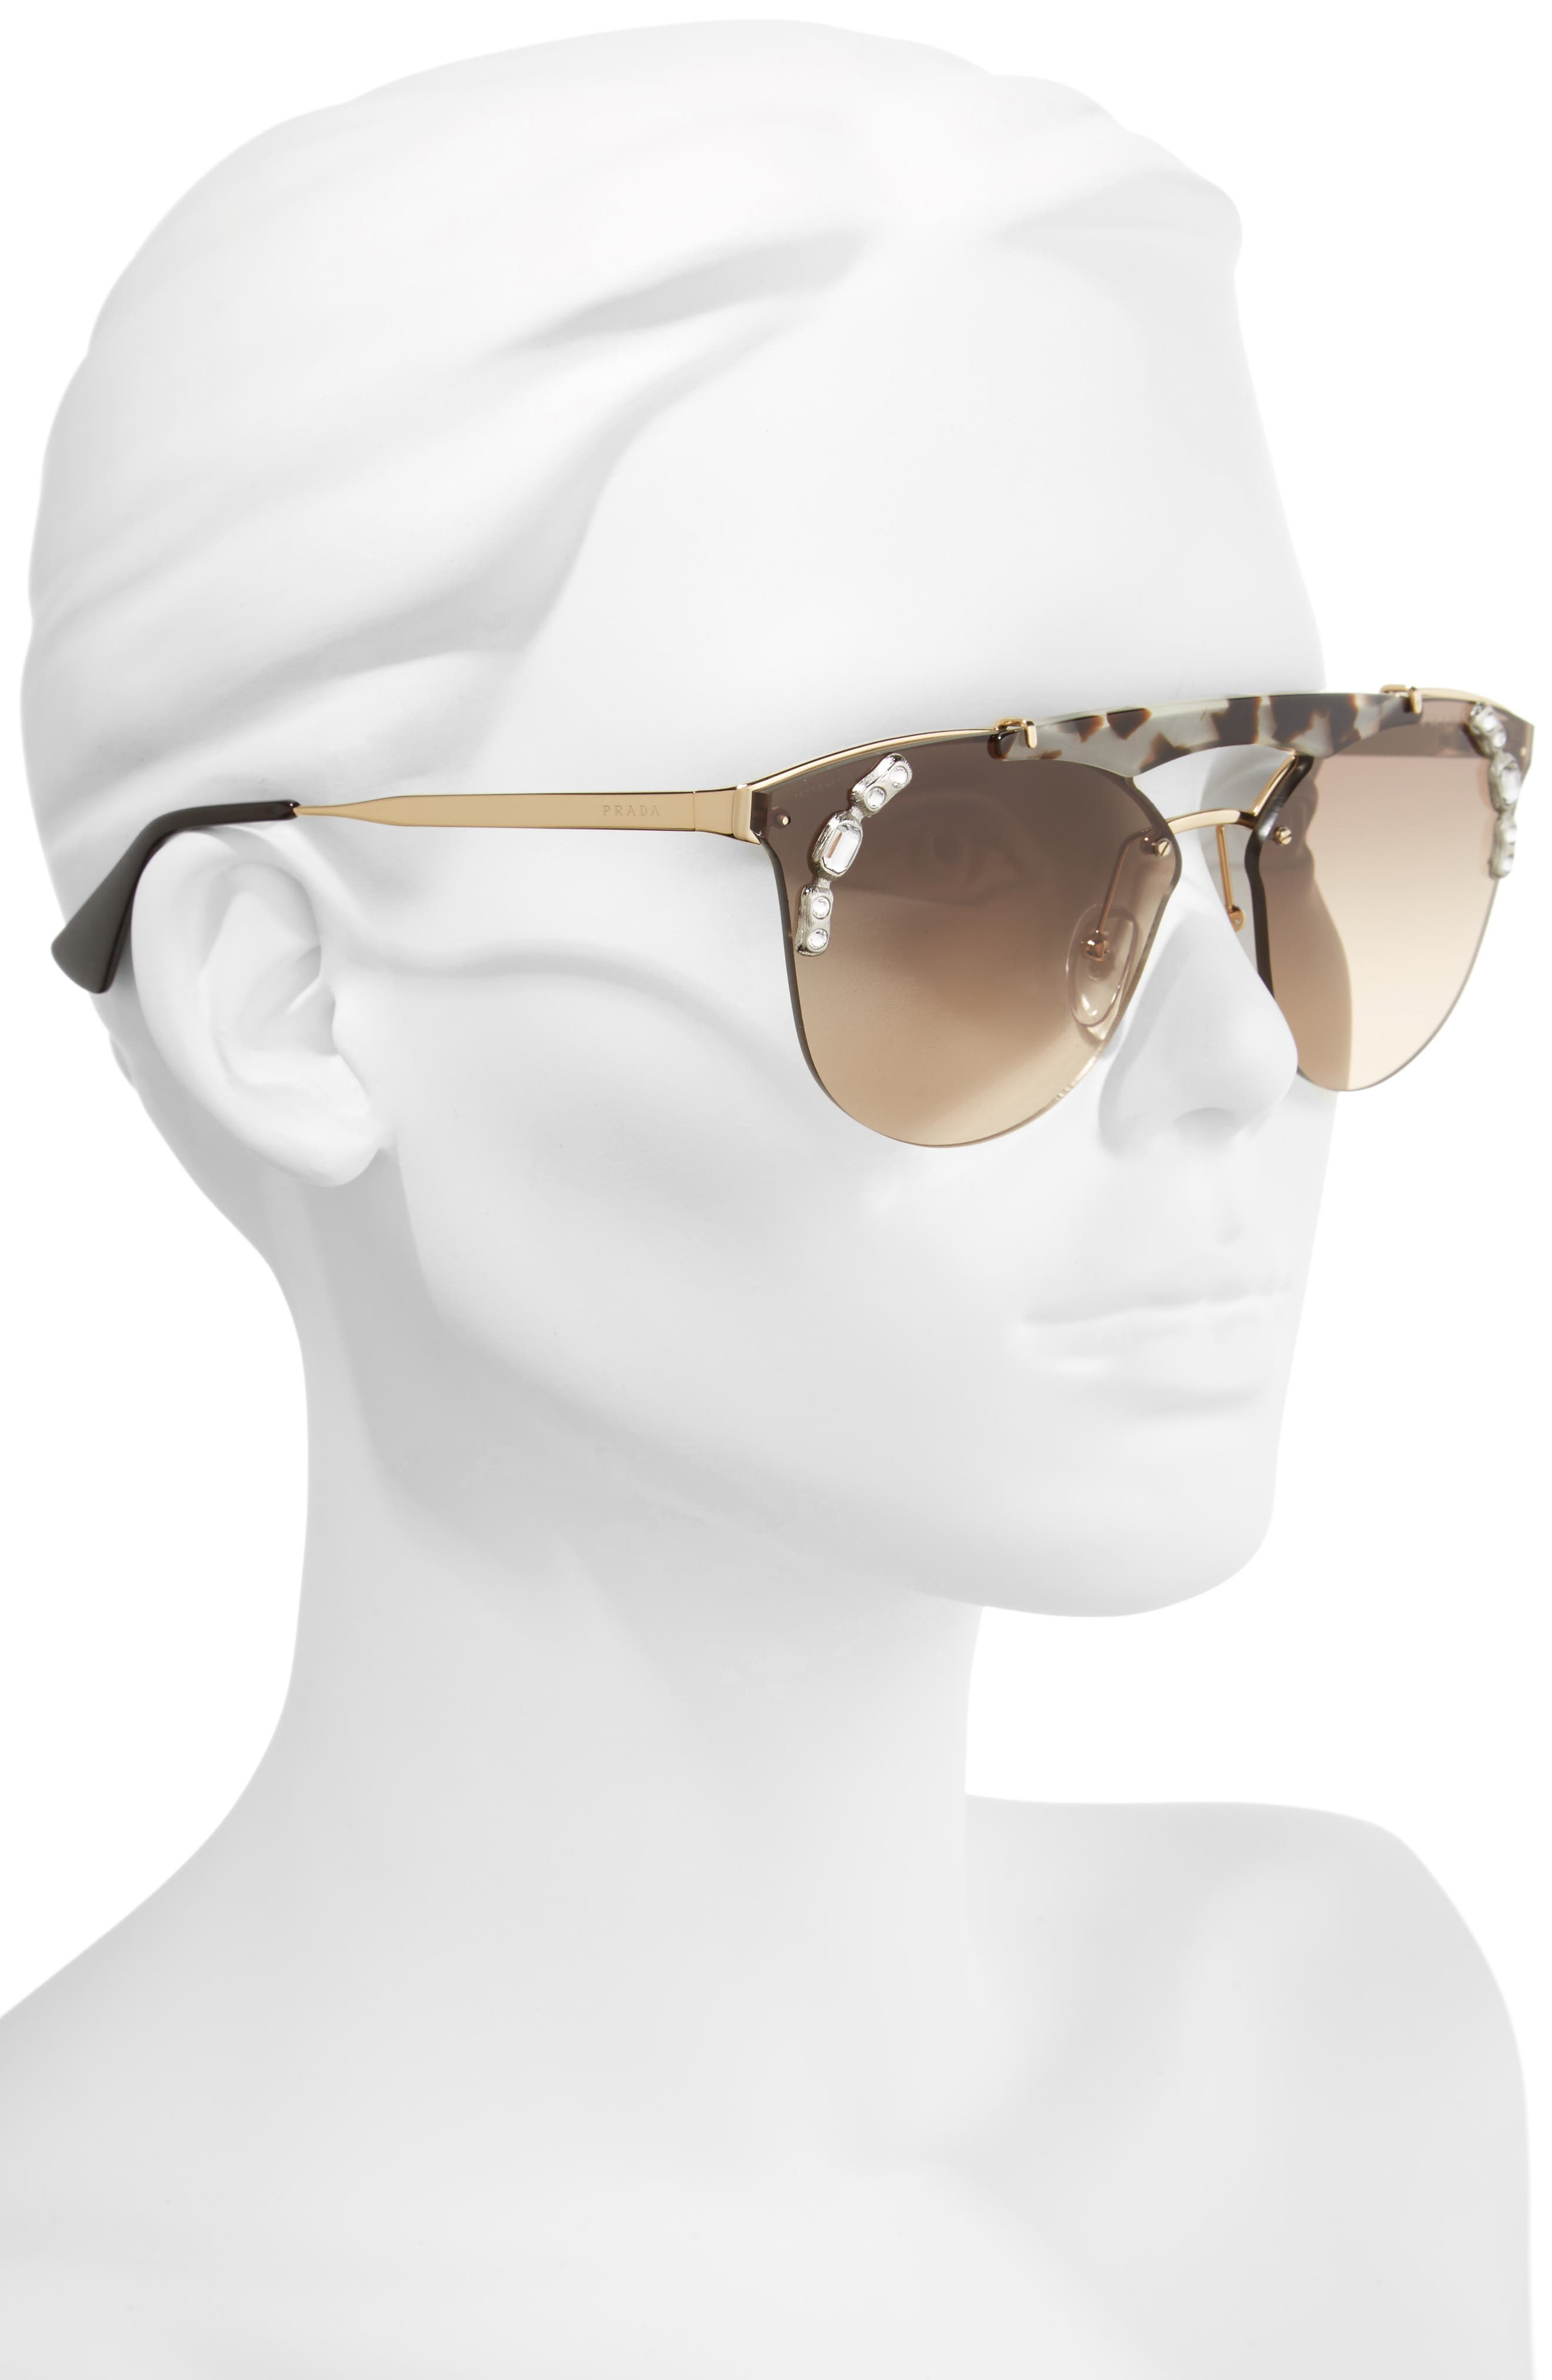 53mm Embellished Rimless Sunglasses,                             Alternate thumbnail 3, color,